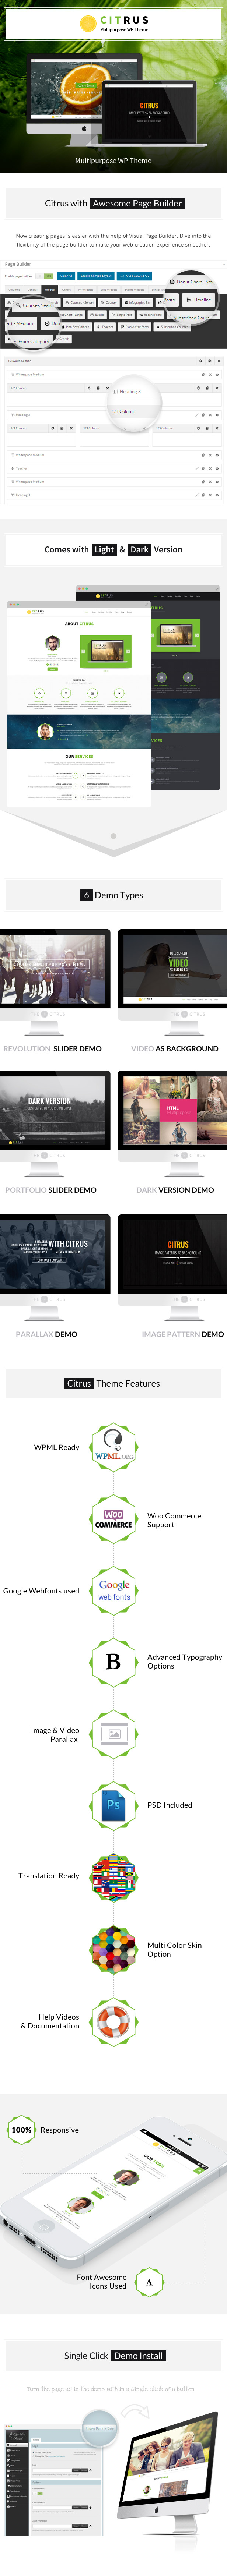 WordPress theme Citrus - Creative One Page Multi-Purpose Theme (Creative)